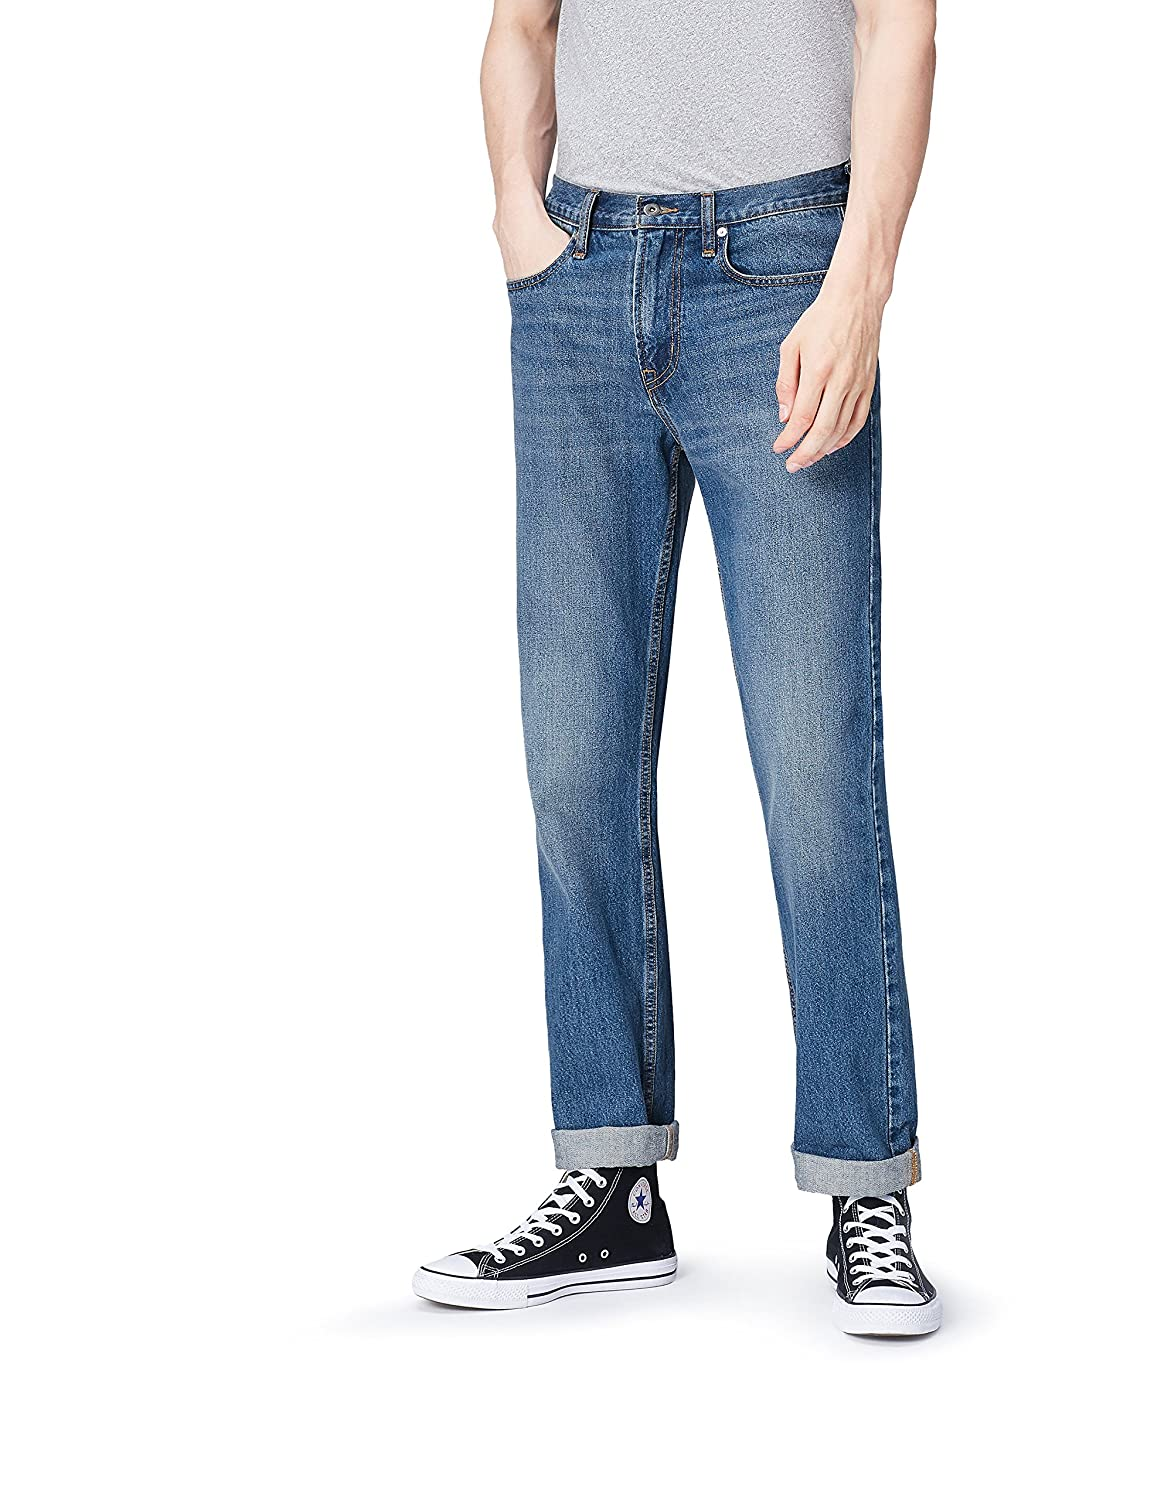 FIND Jeans a Gamba Dritta Uomo CRY0021020170213